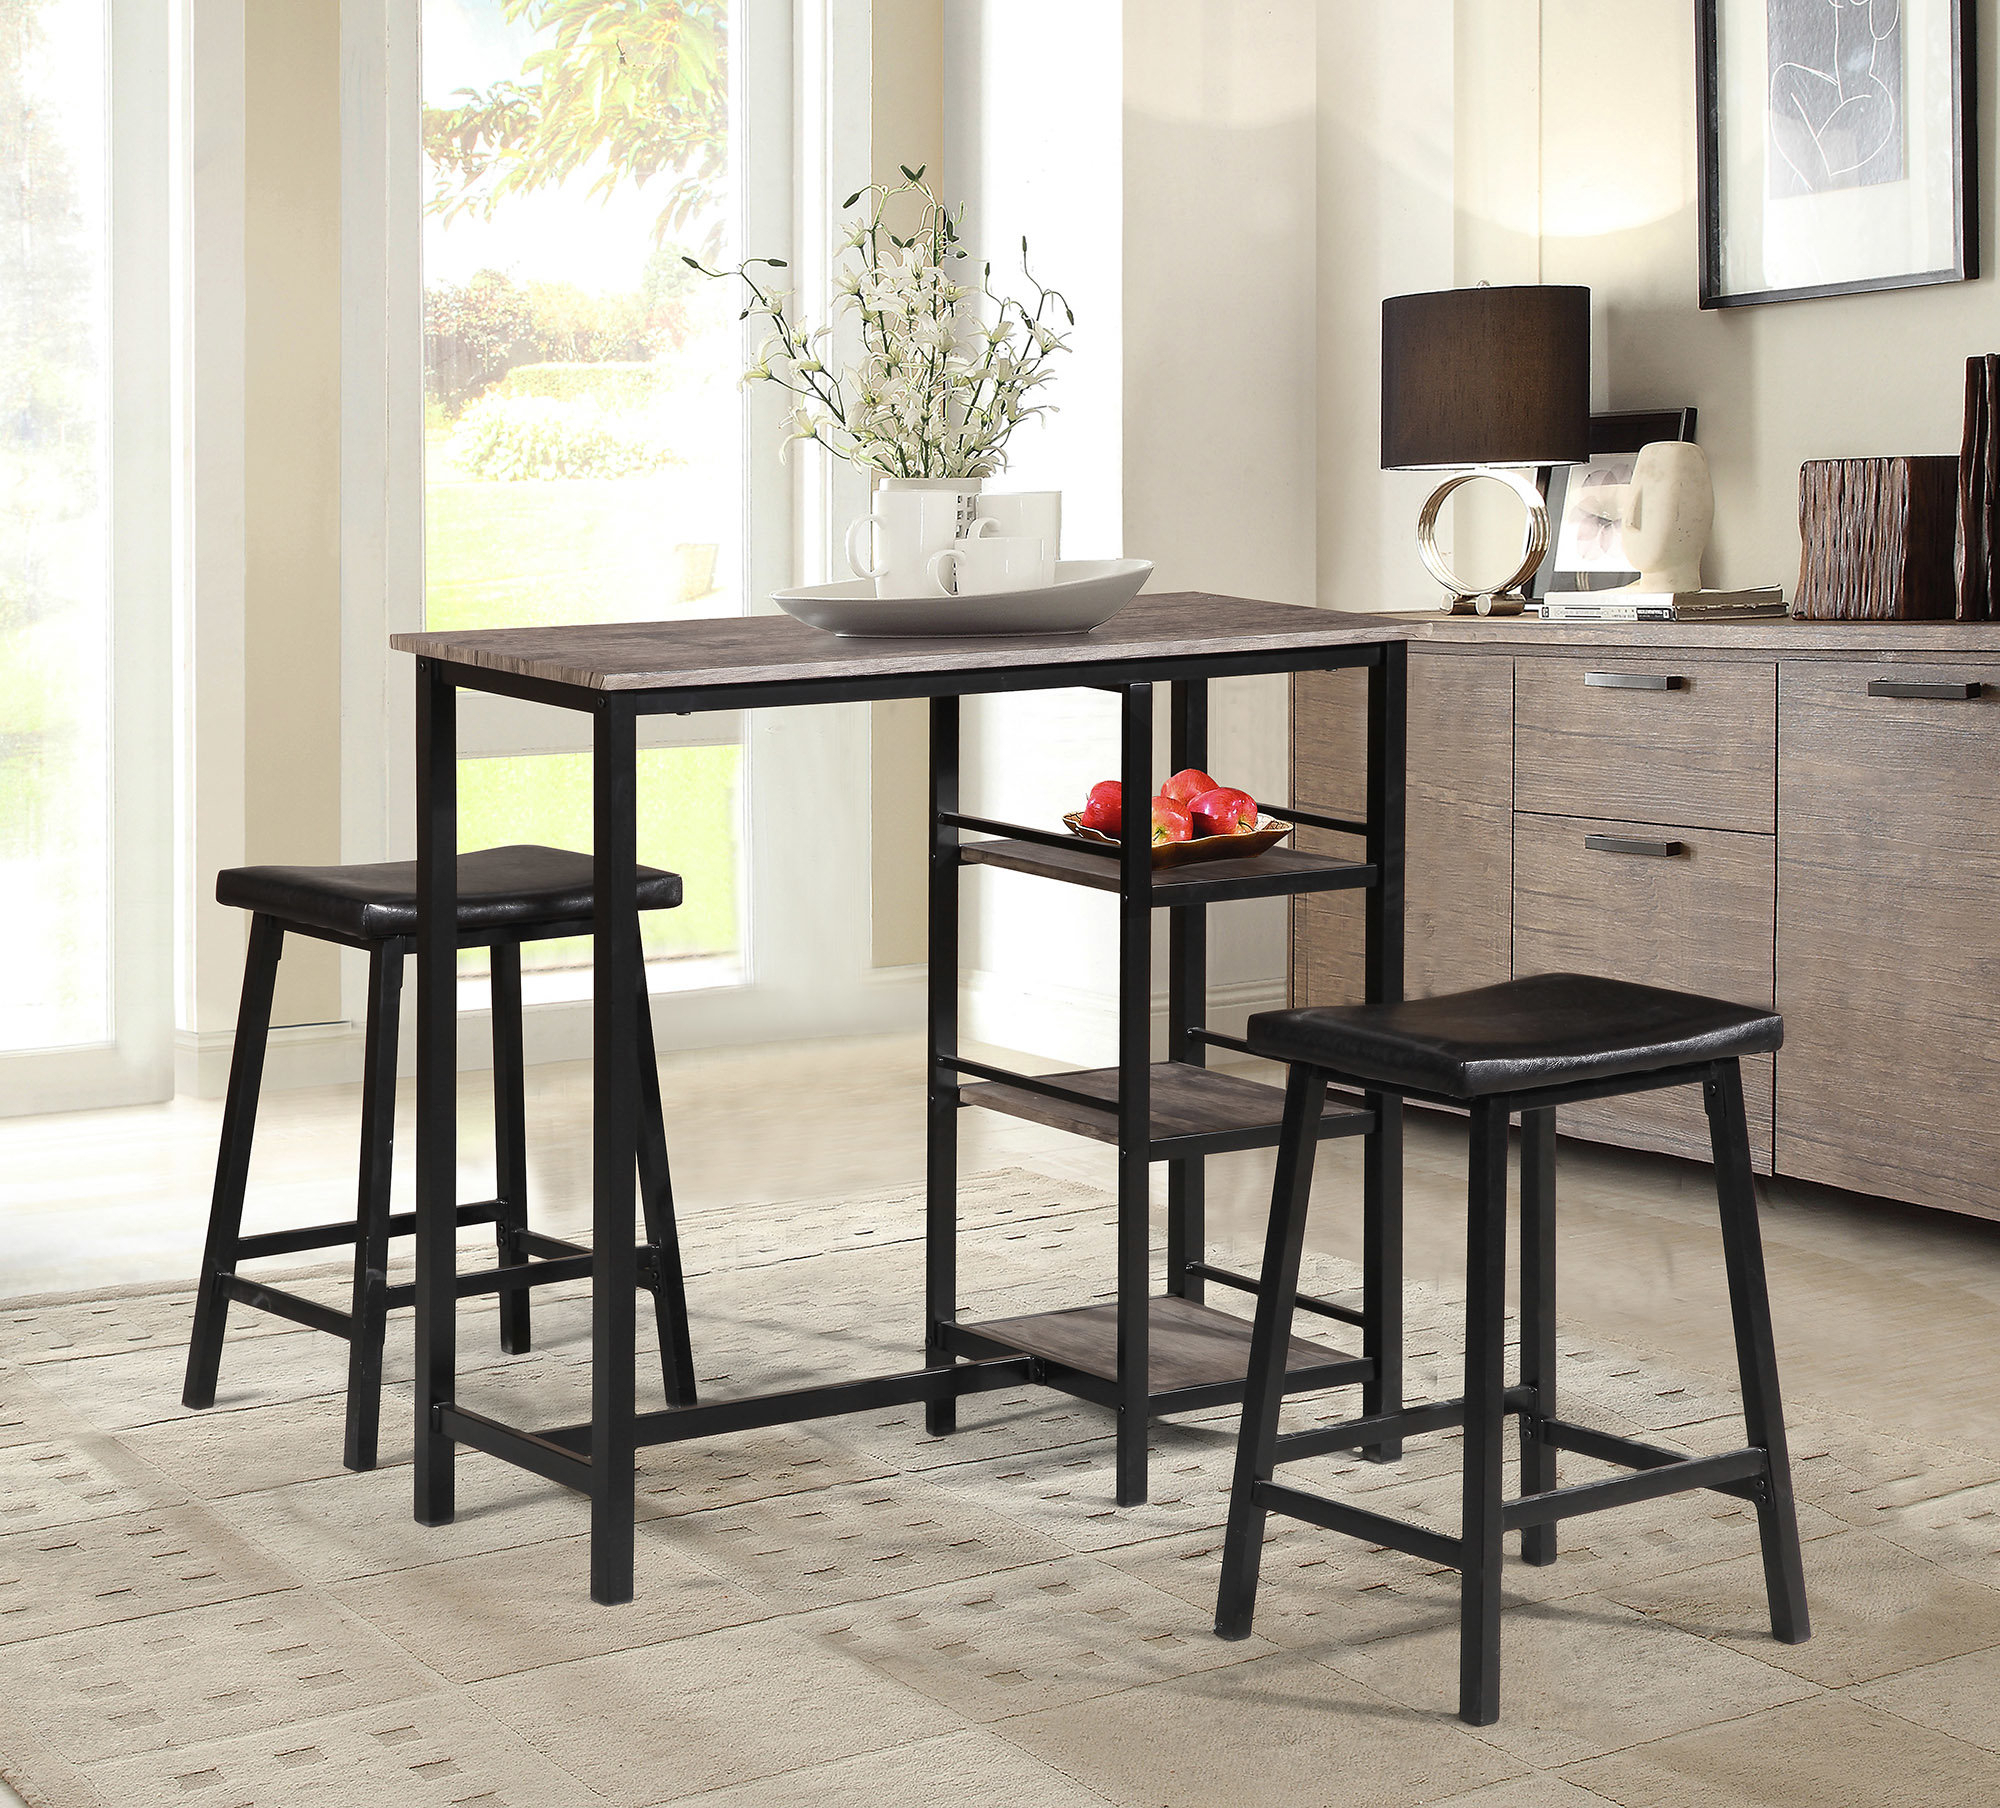 Most Recently Released Oviedo 3 Piece Pub Table Set Throughout Kernville 3 Piece Counter Height Dining Sets (View 9 of 20)